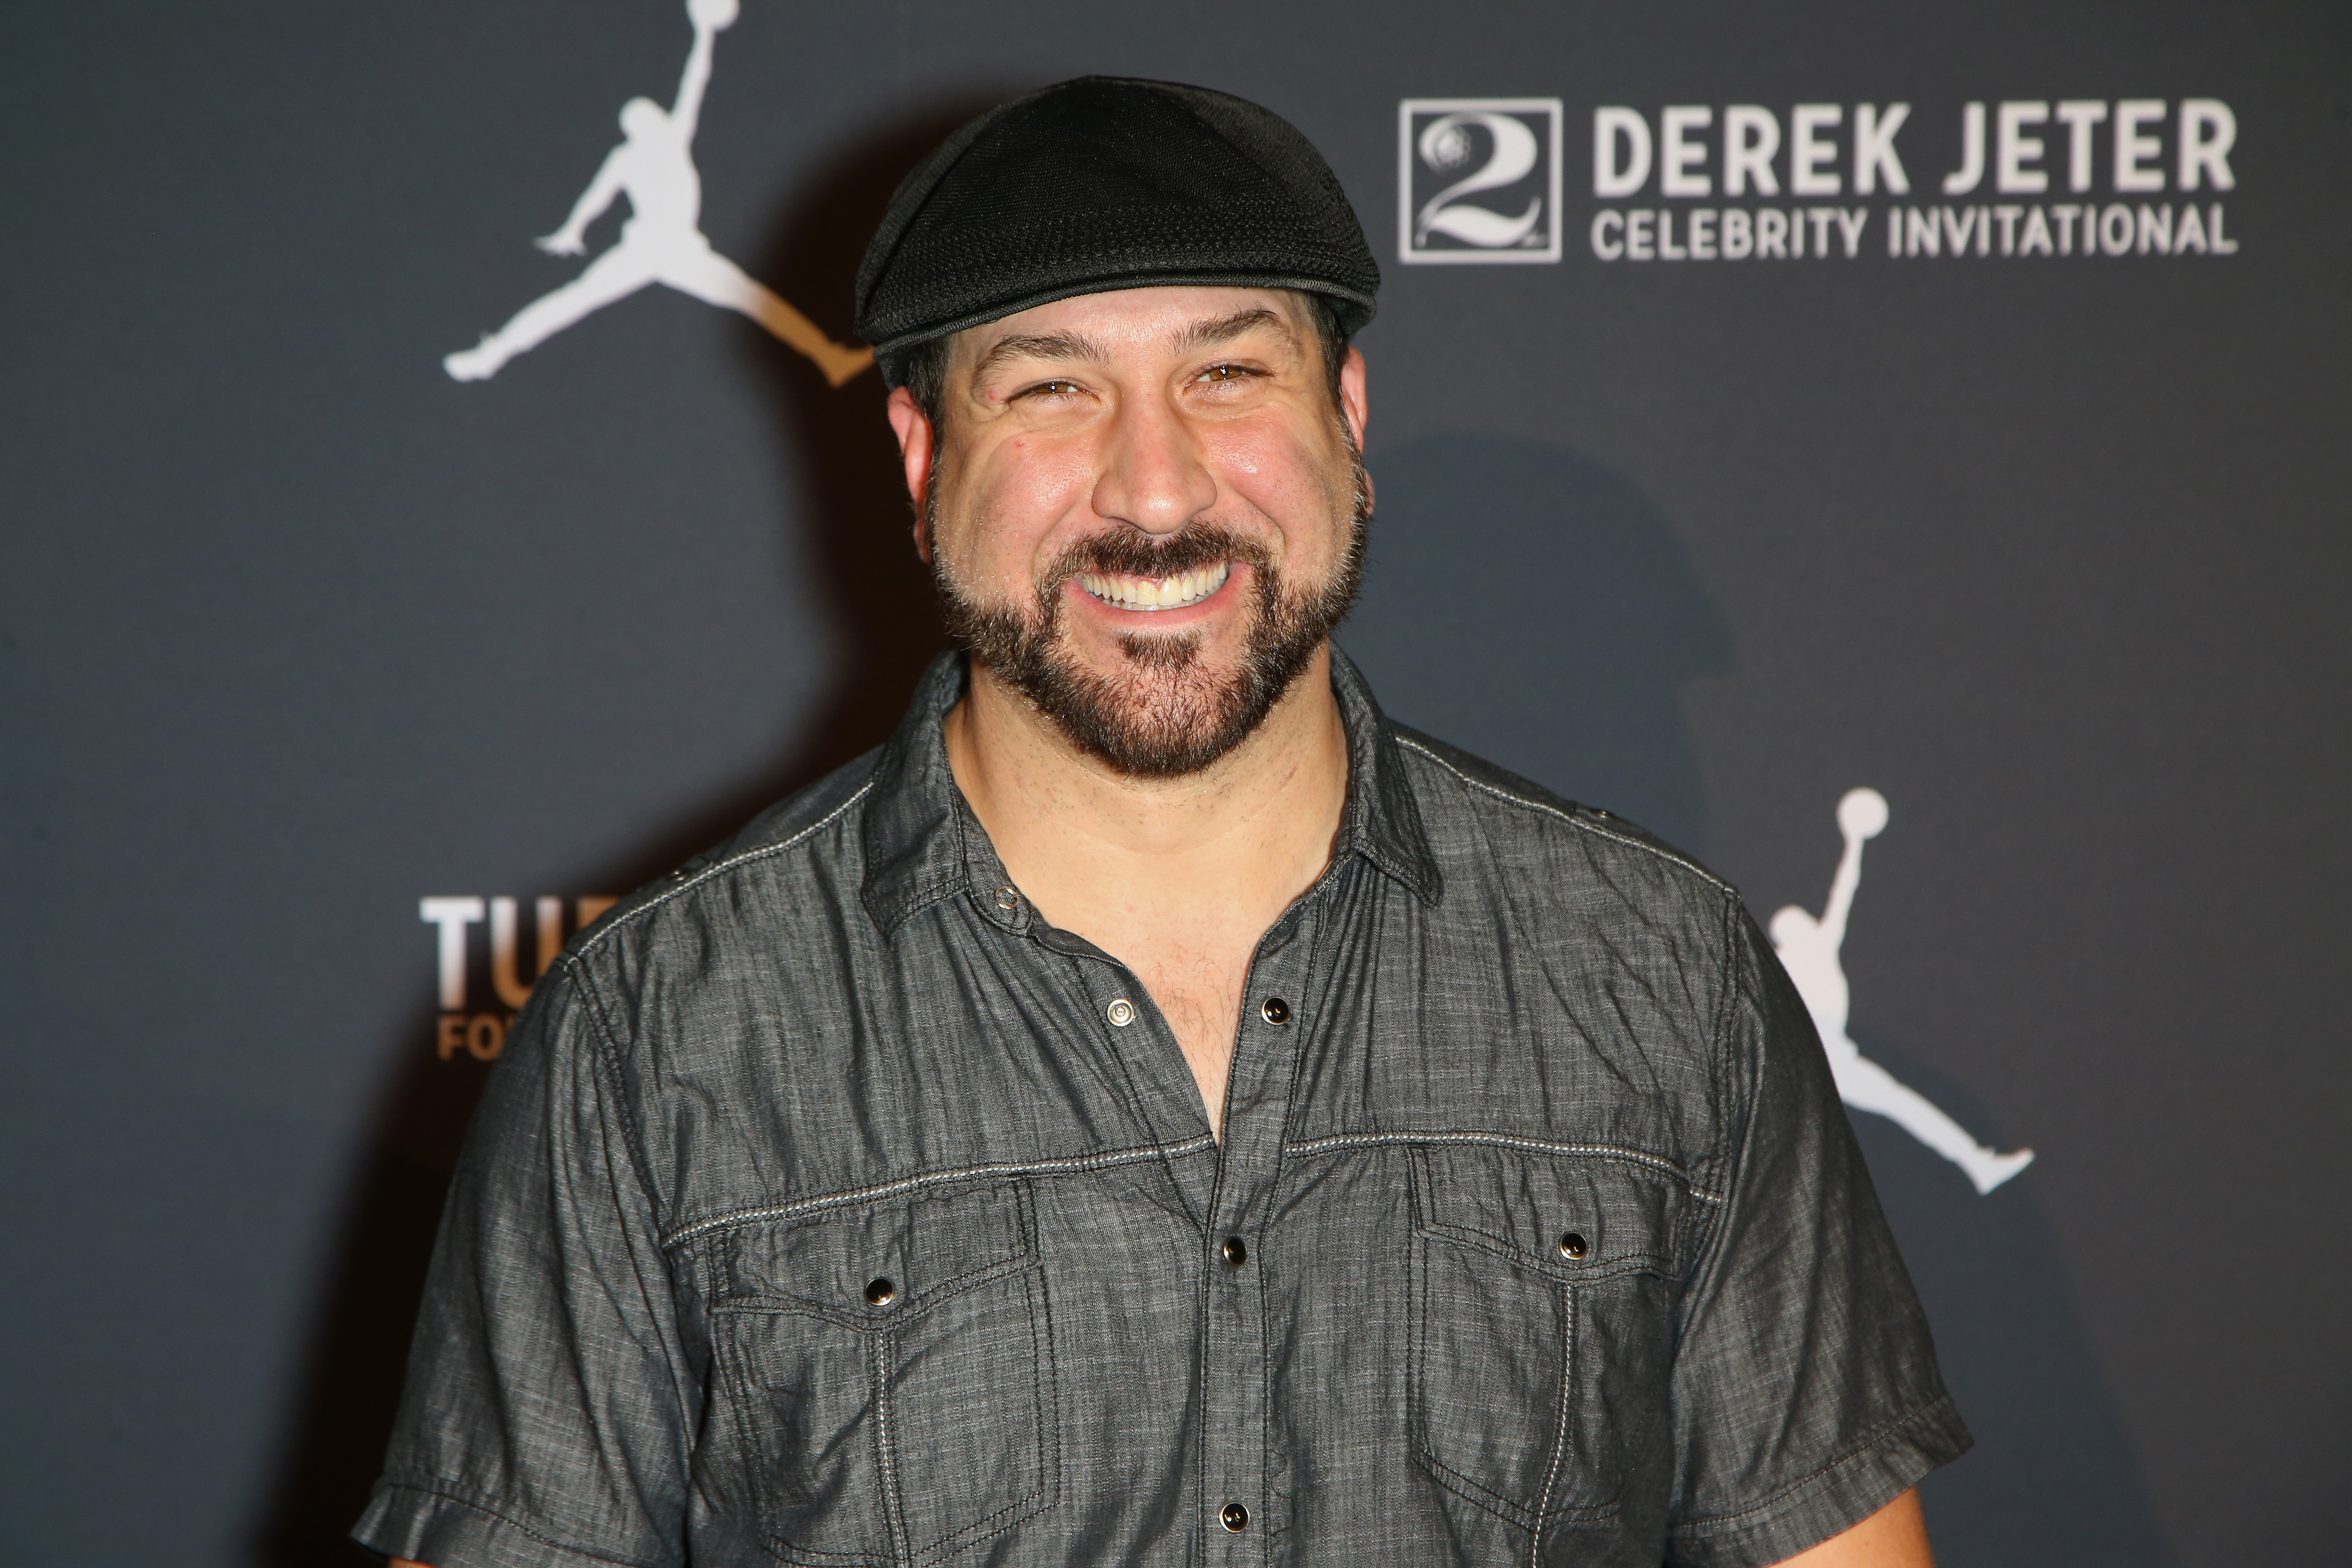 Singer Joey Fatone arrives at the Liquid Pool Lounge for the kickoff of Derek Jeter's celebrity invitational at the Aria Resort & Casino on April 20, 2016 in Las Vegas, Nevada.